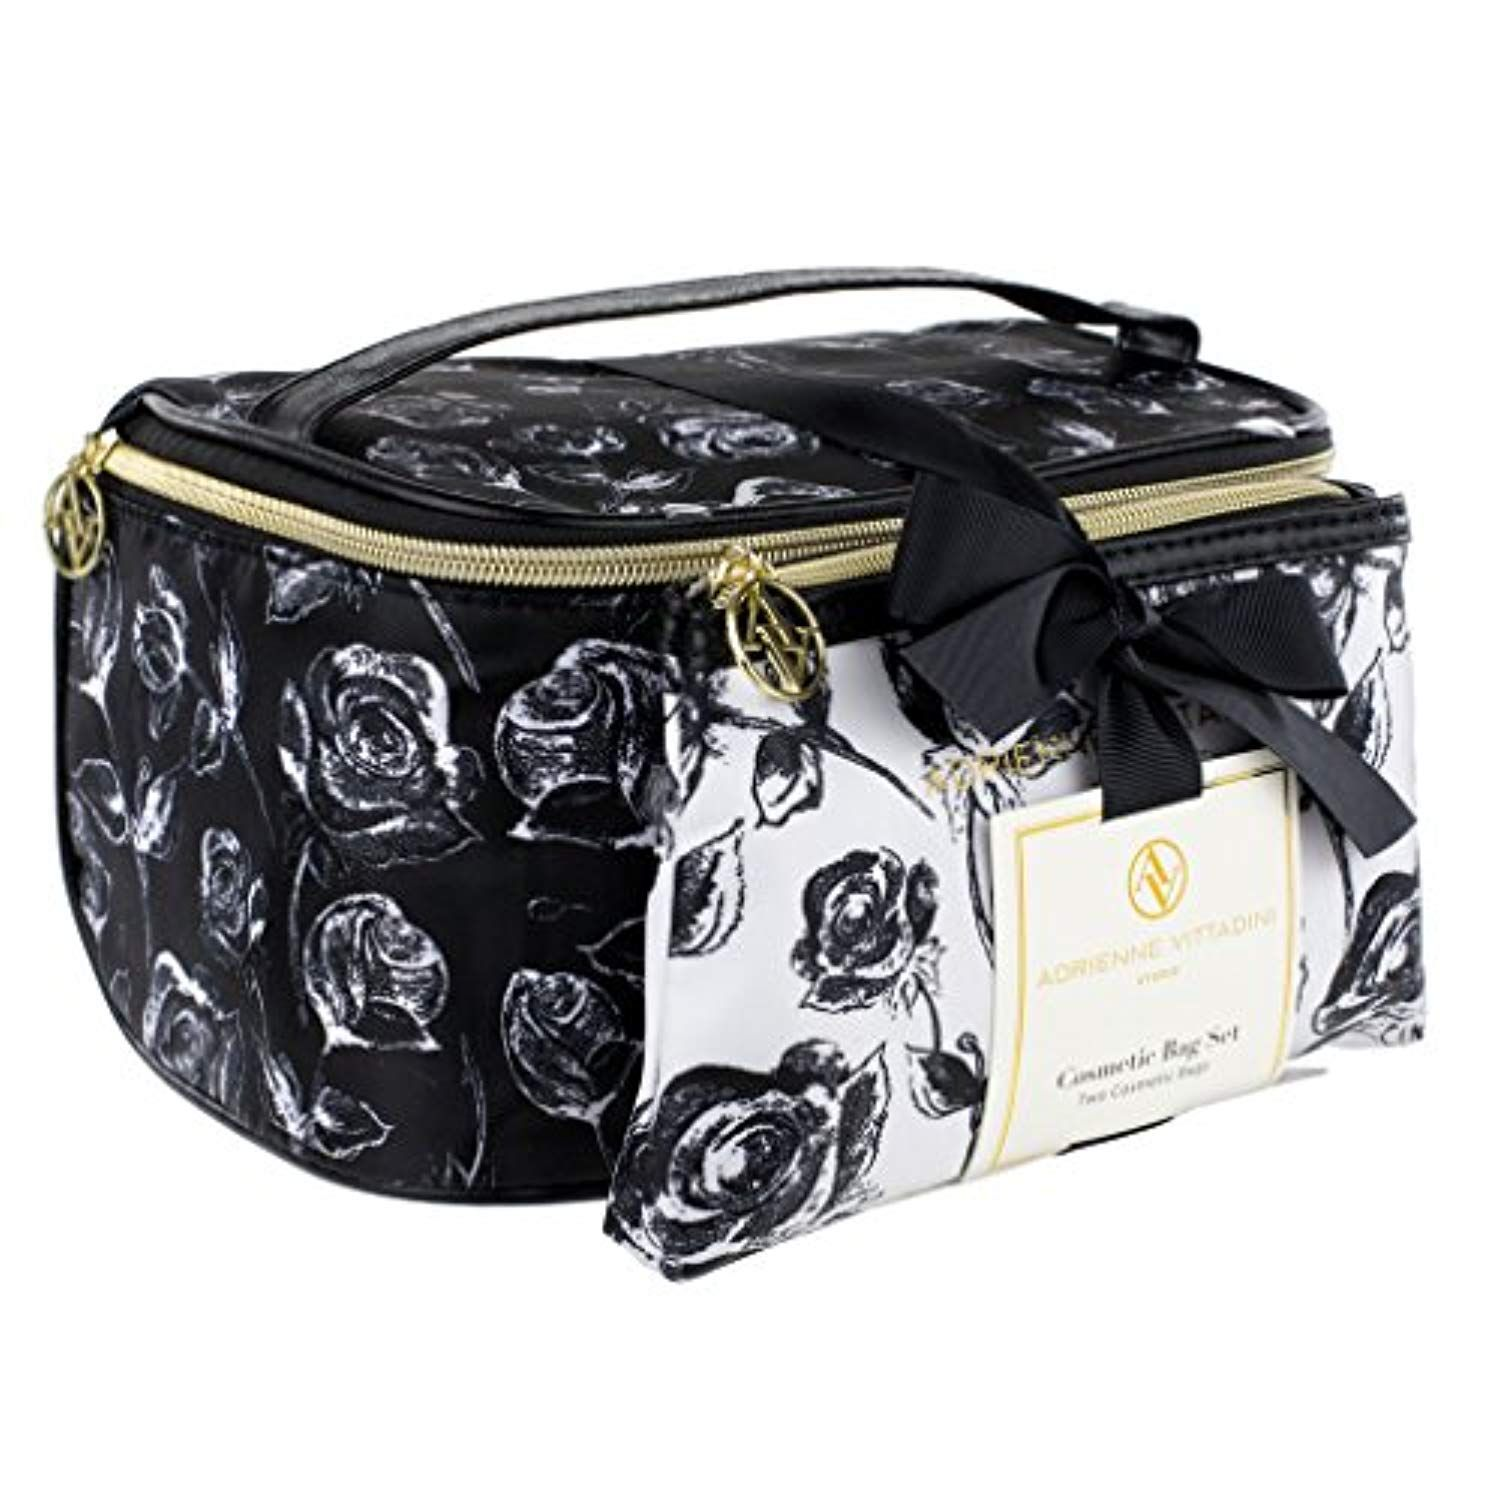 Adrienne Vittadini Makeup Bag Set  Nylon Carry On Toiletry...   Click image  for more details. (This is an affiliate link)  mascarareview 49177cc982f1e